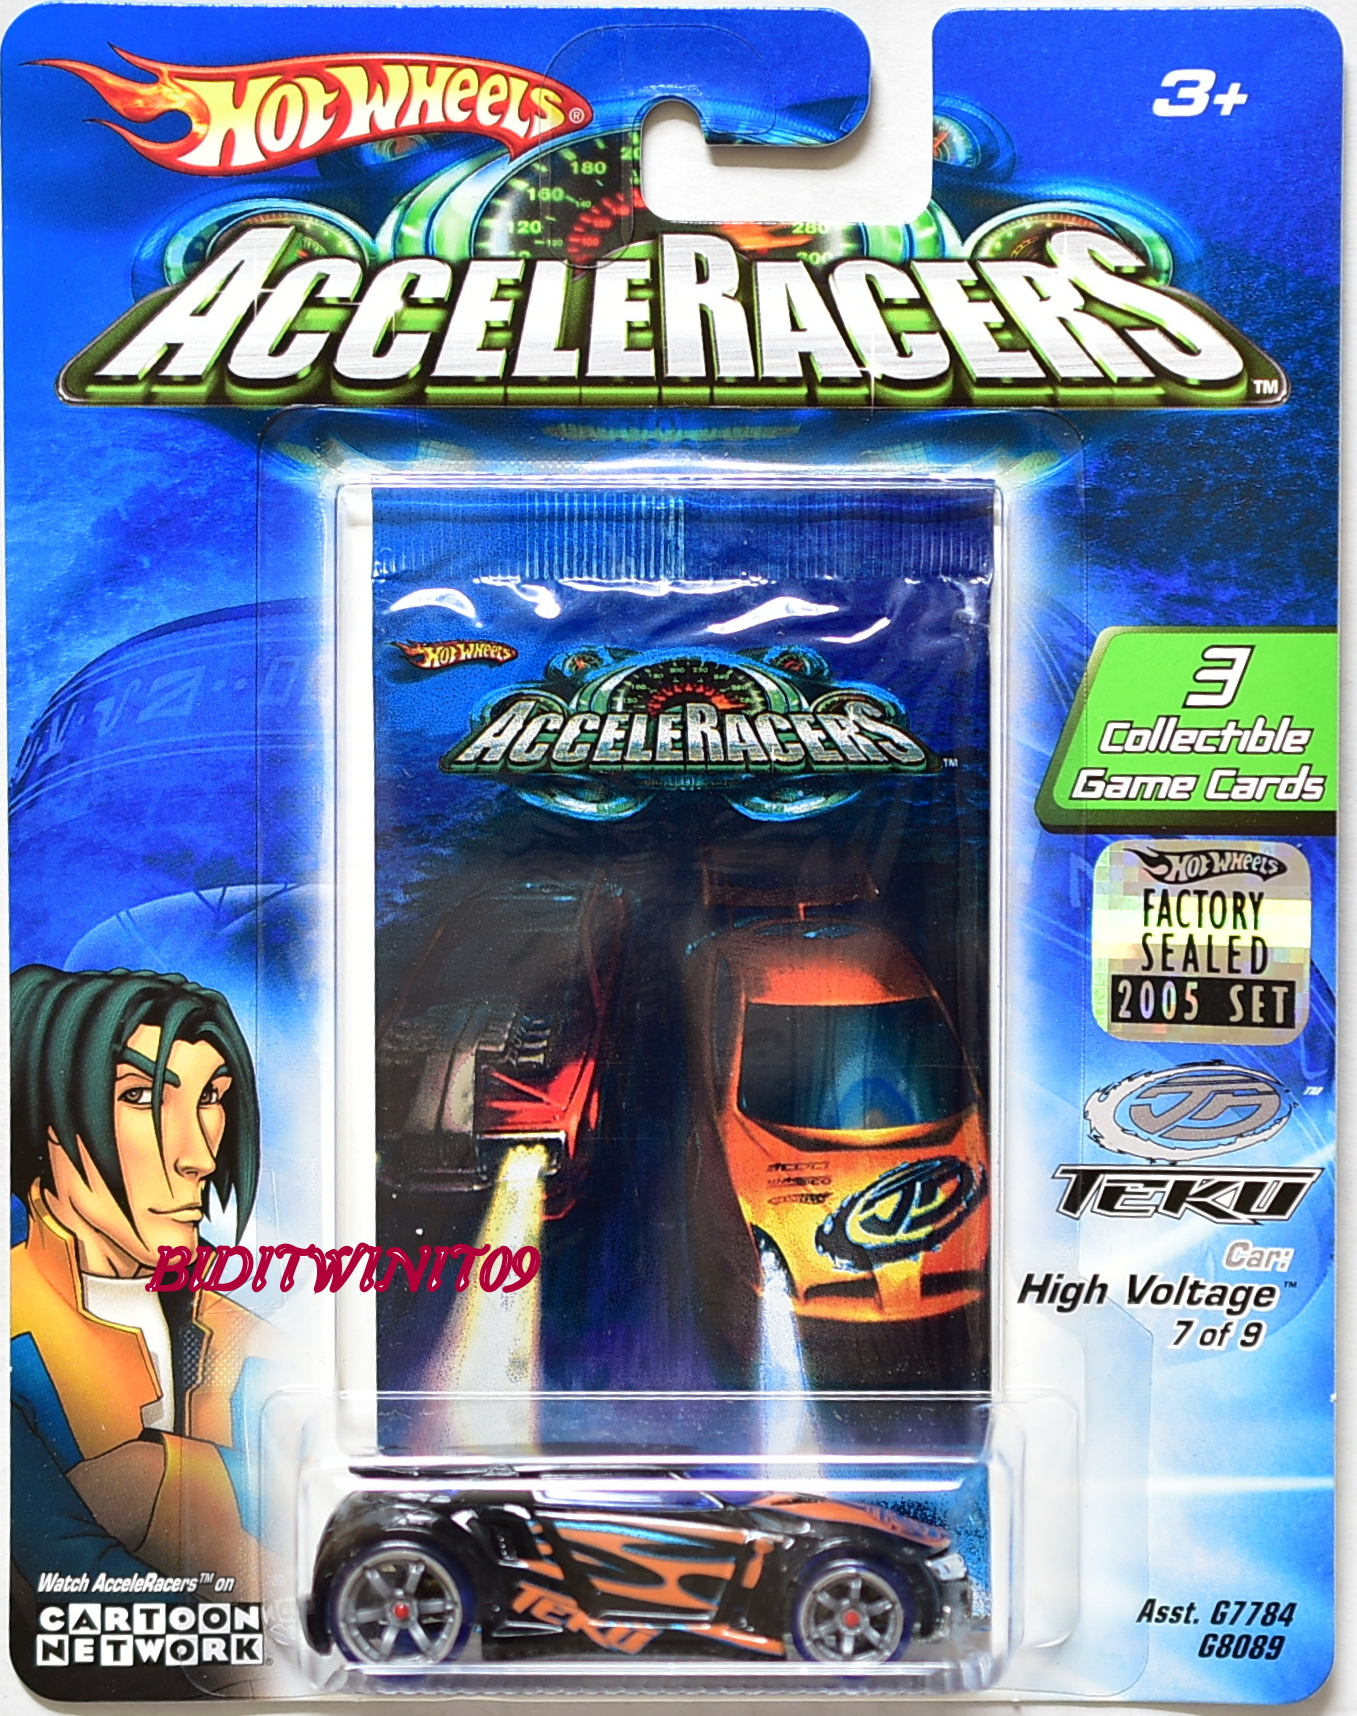 HOT WHEELS ACCELERACERS TEKU HIGH VOLTAGE 7/9 FACTORY SEALED